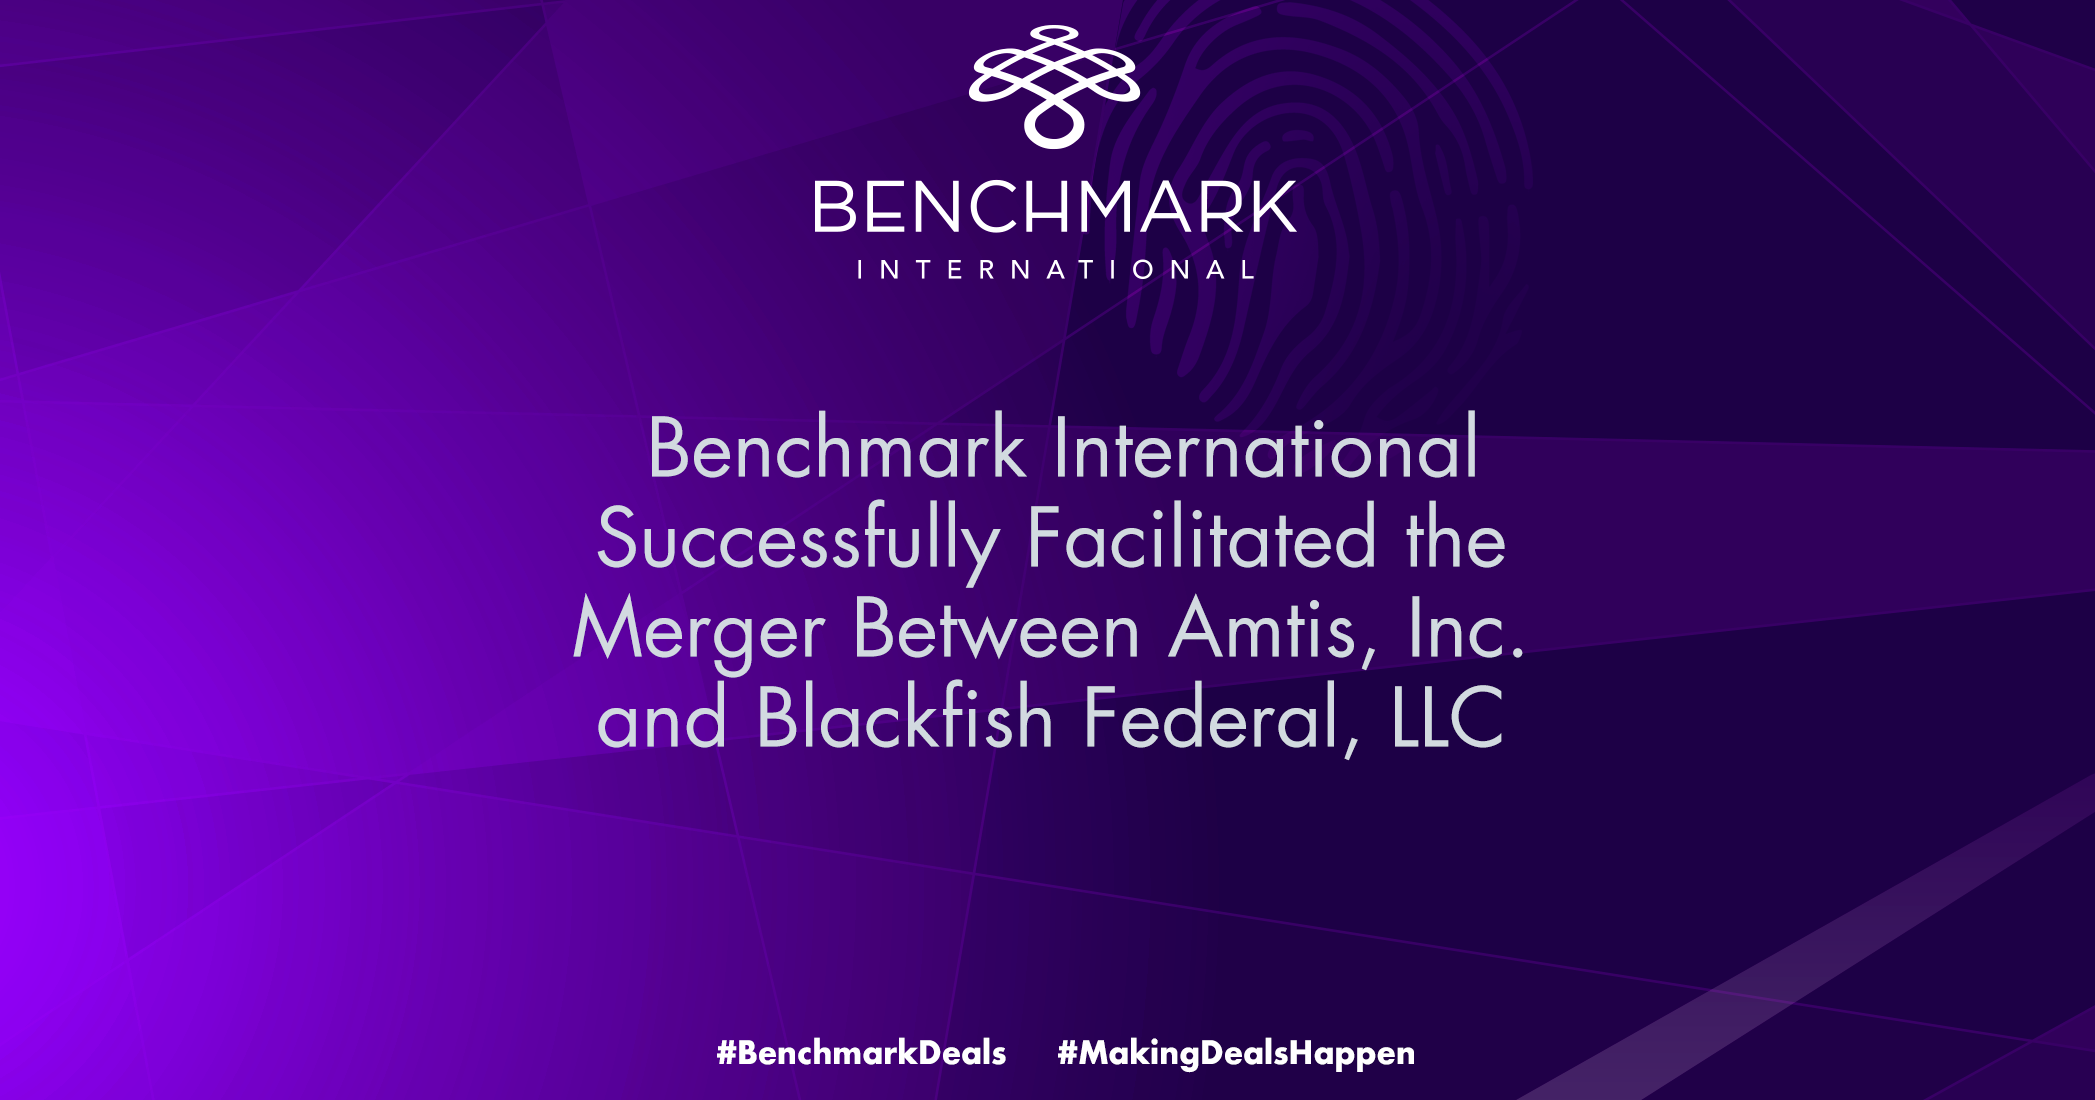 BENCHMARK INTERNATIONAL SUCCESSFULLY FACILITATED THE MERGER BETWEEN AMTIS, INC. AND BLACKFISH FEDERAL, LLC.